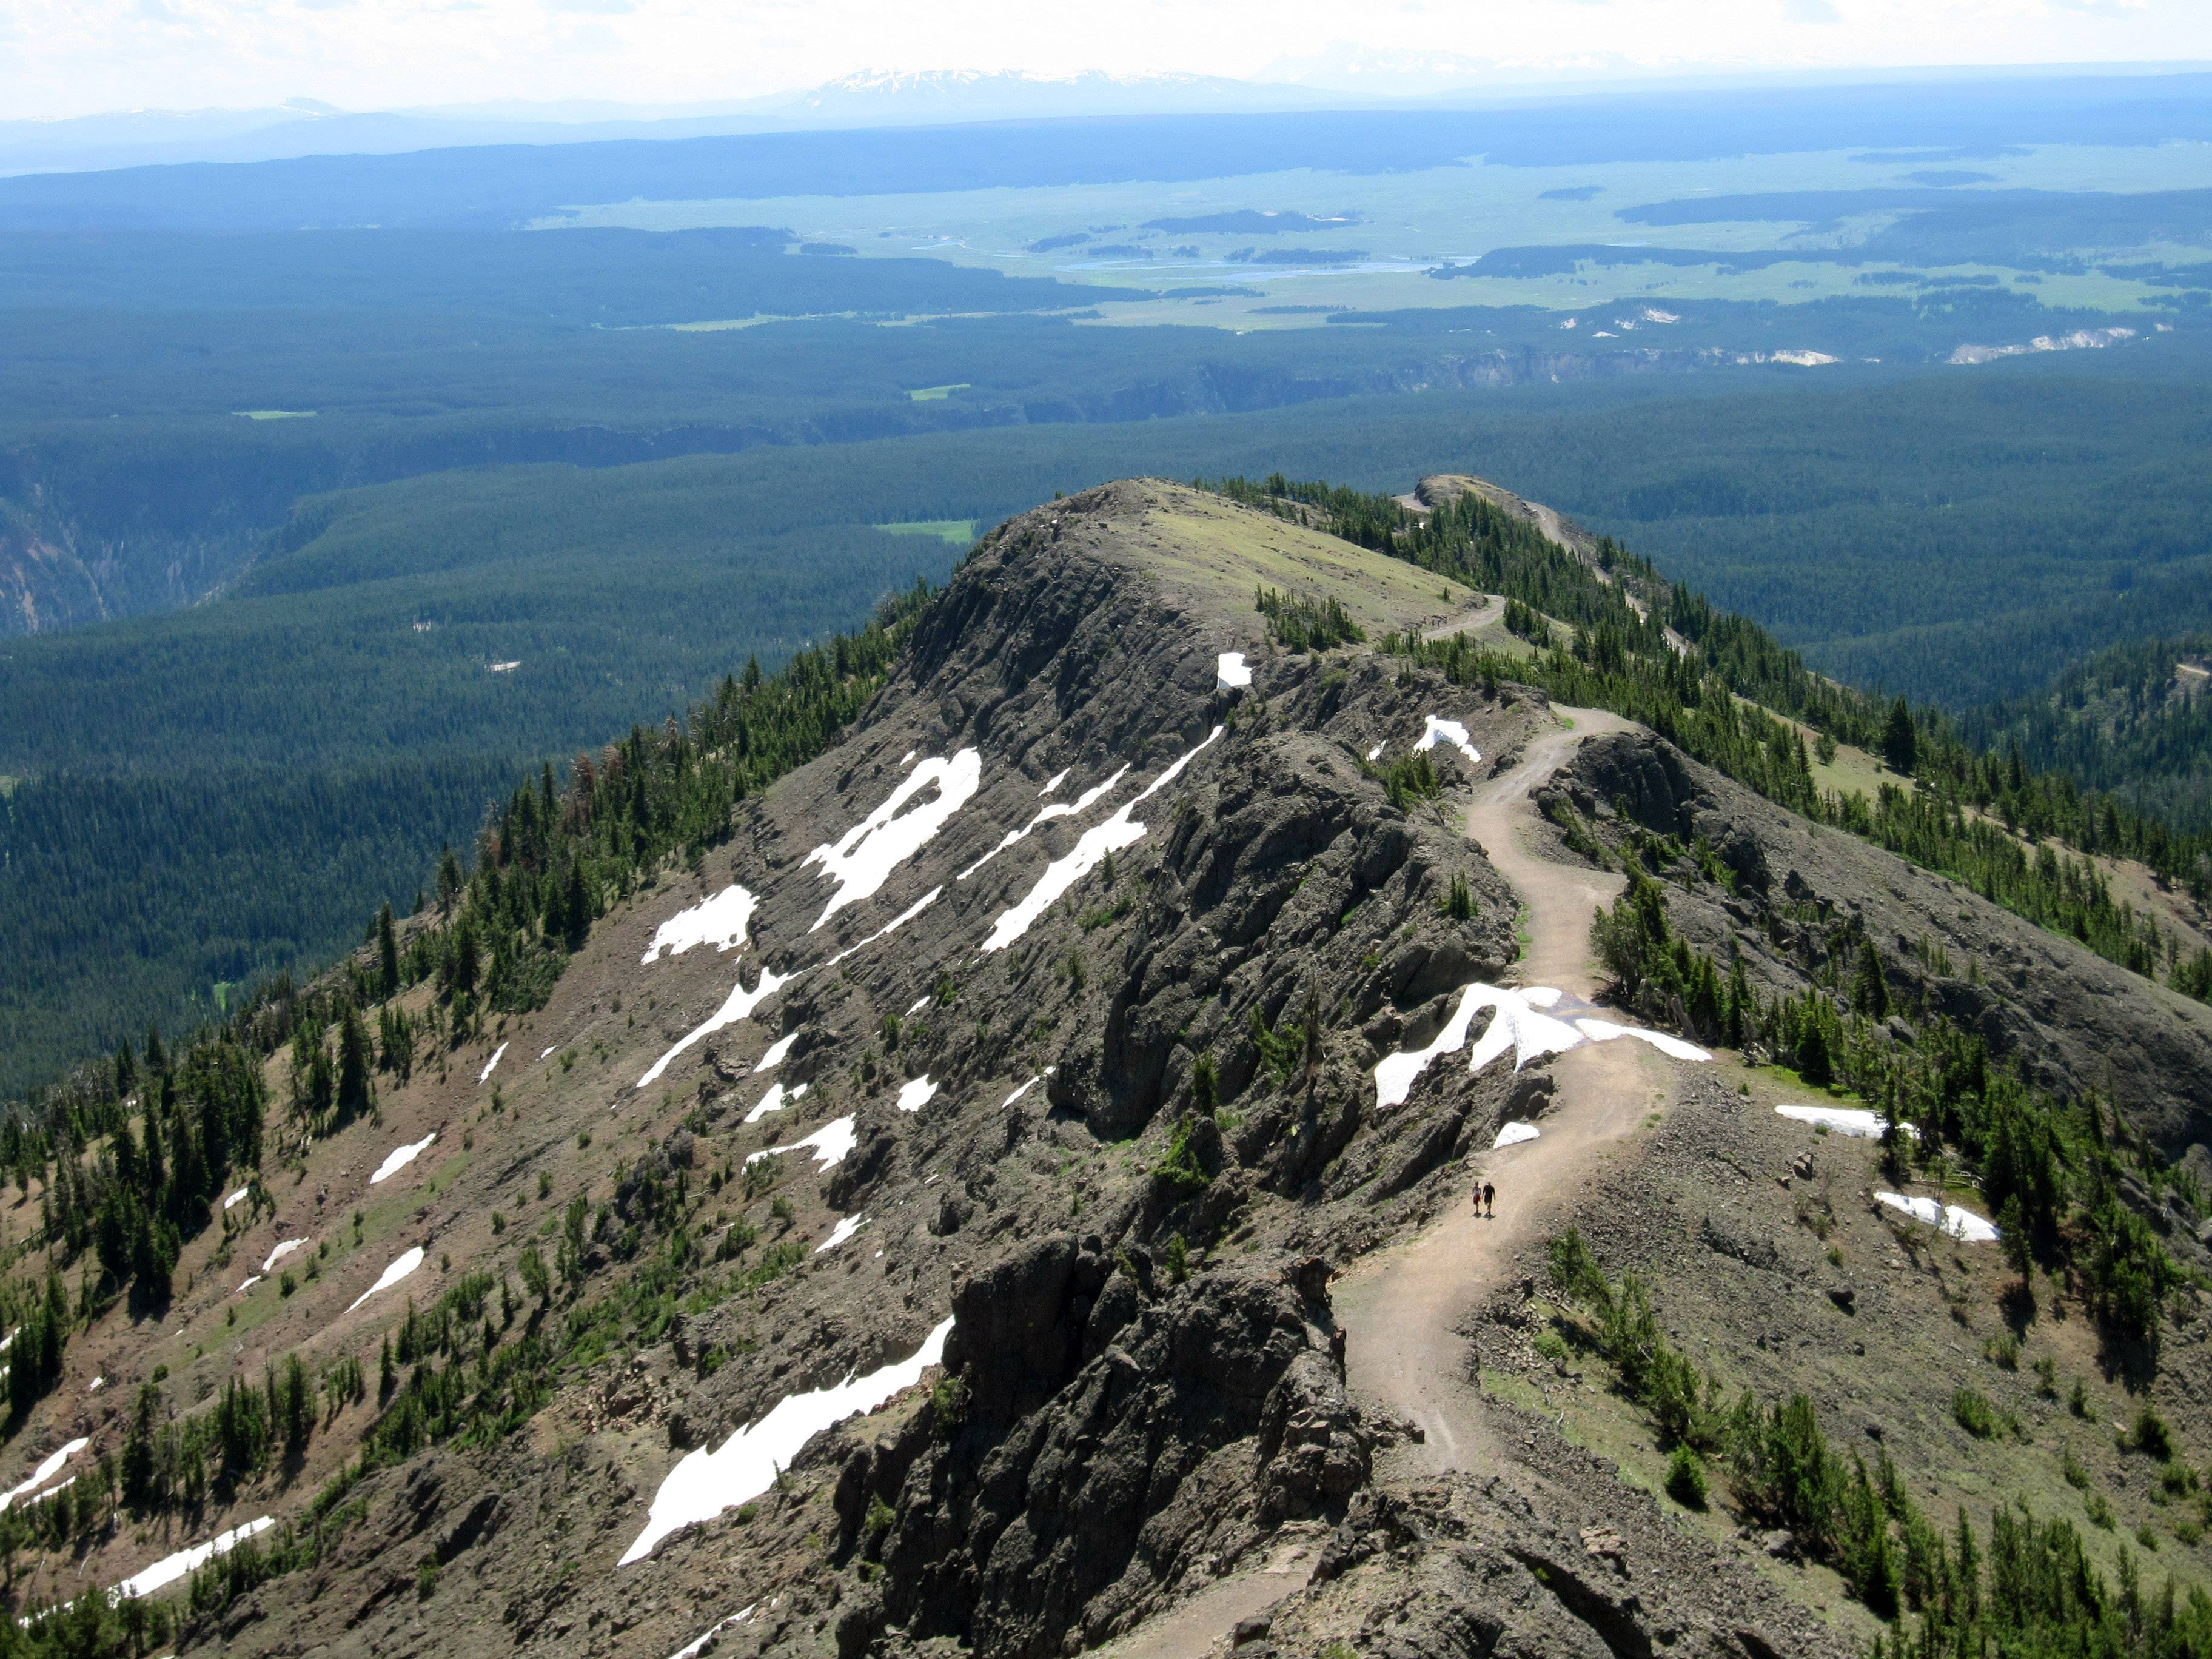 The trail to the top of Mount Washburn in Yellowstone National Park takes hikers 1,400 feet to an elevation of 10,243 feet.